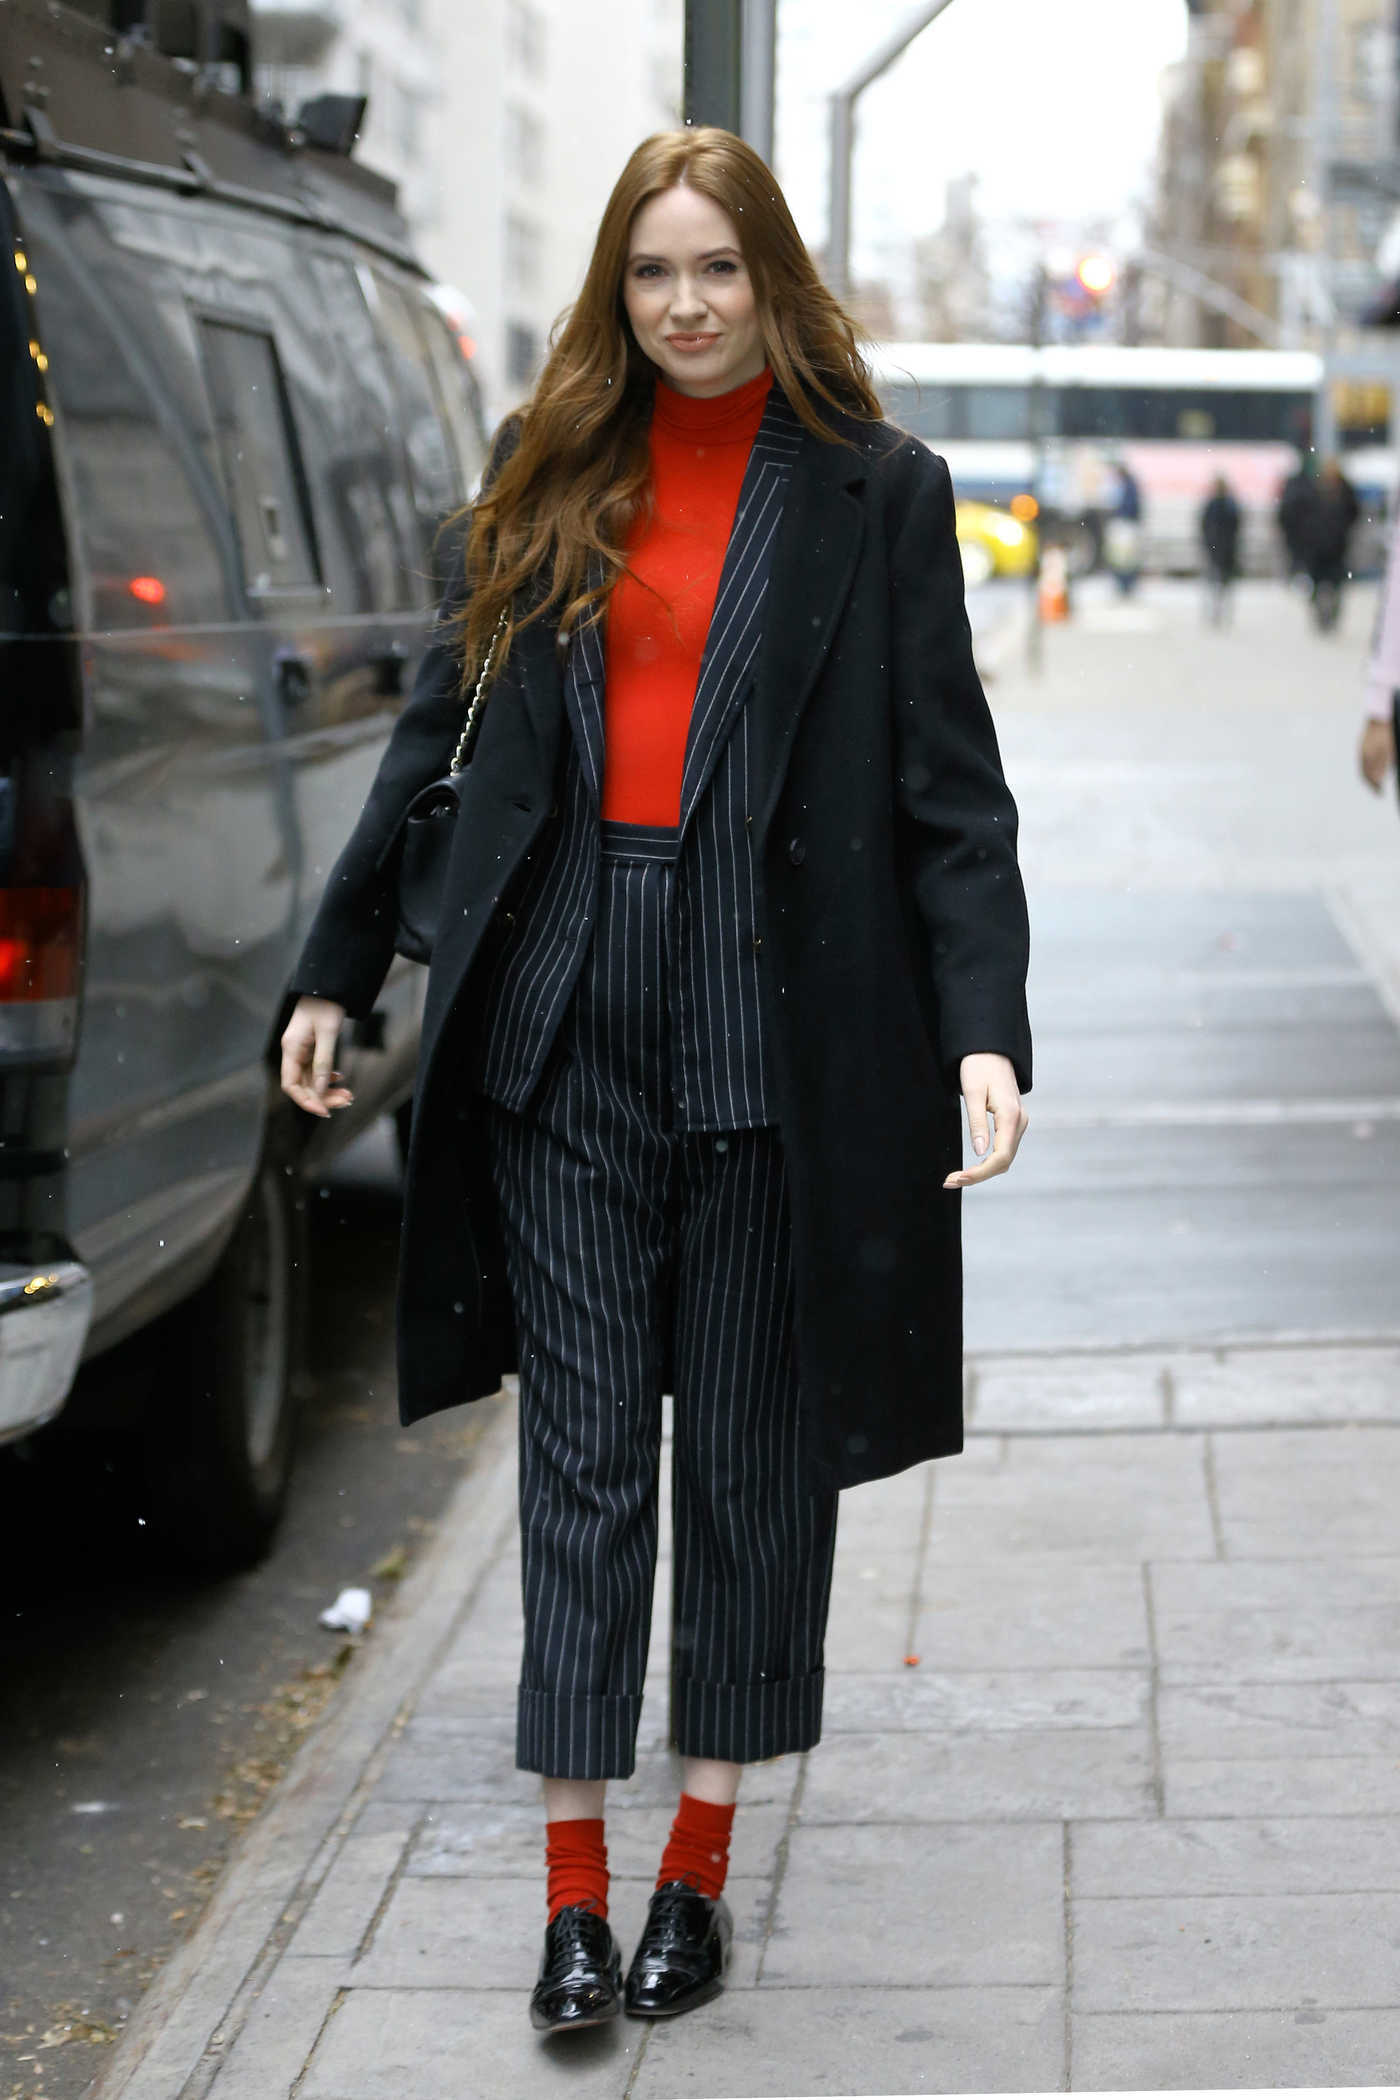 Karen Gillan in a Black Coat Was Seen Out New York 12/13/2018